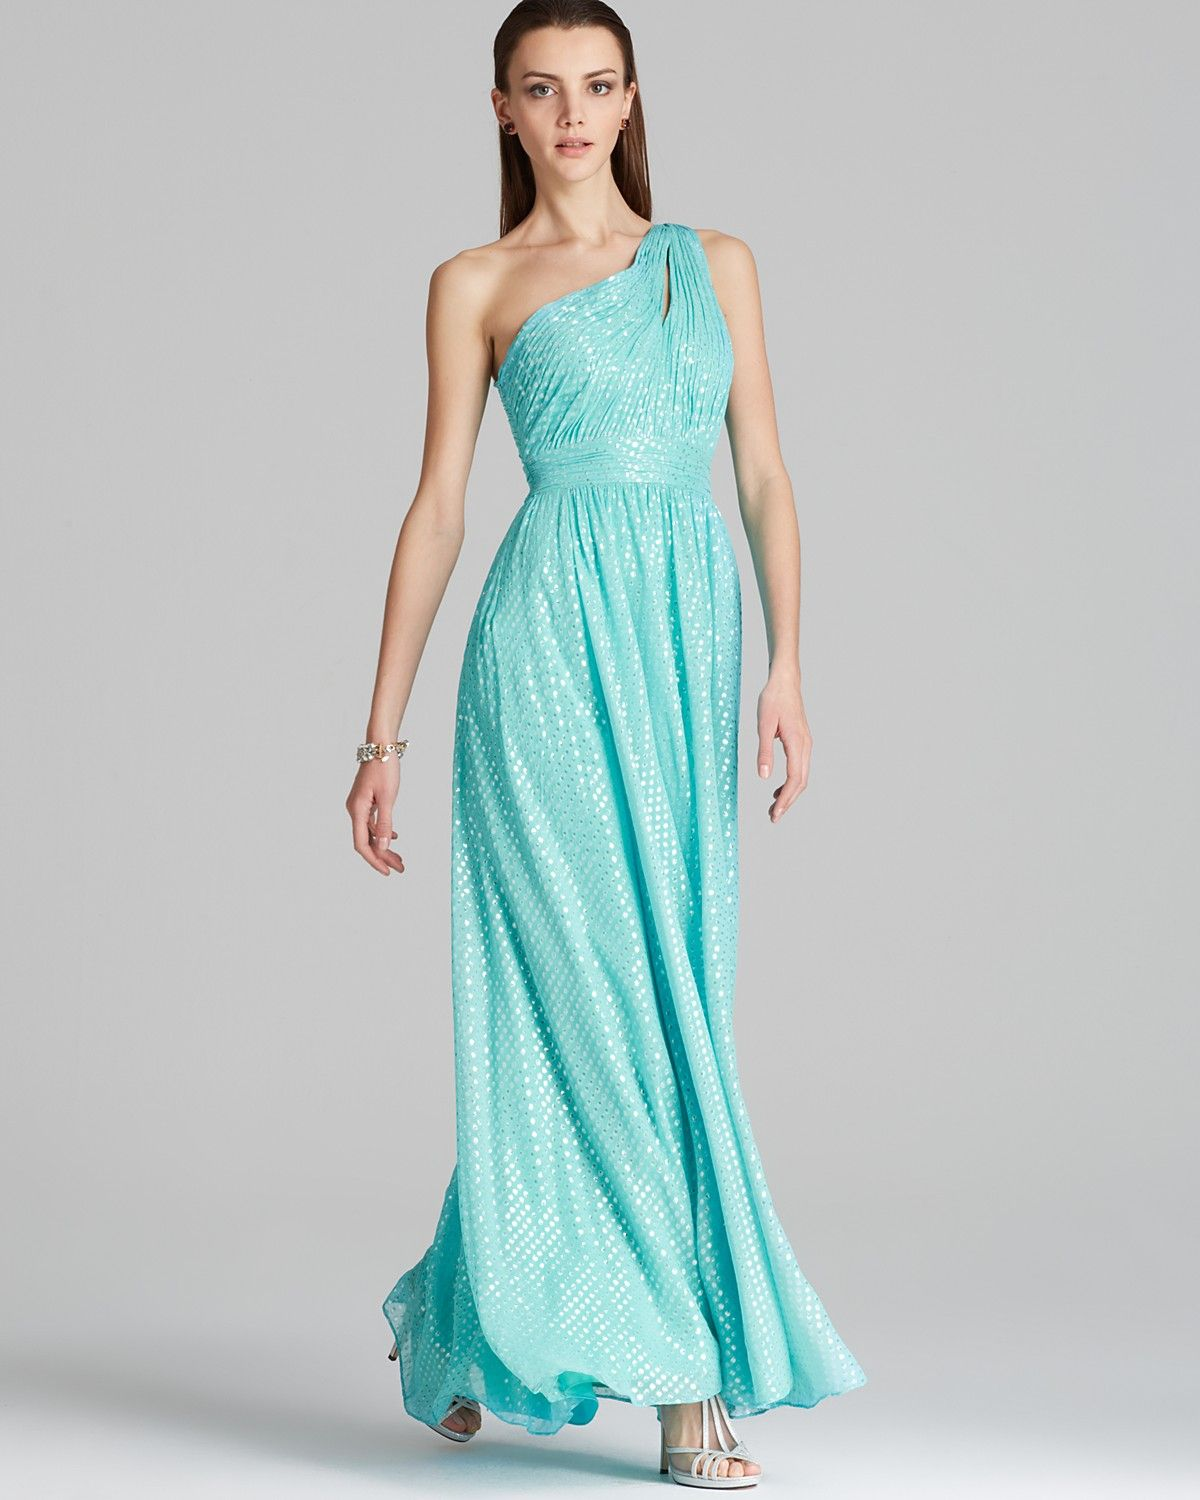 Aqua Gown One Shoulder Foil Silk Chiffon With Pleated Skirt Women Dresses Bloomingdale S Womens Dresses Gowns Silk Chiffon [ 1500 x 1200 Pixel ]